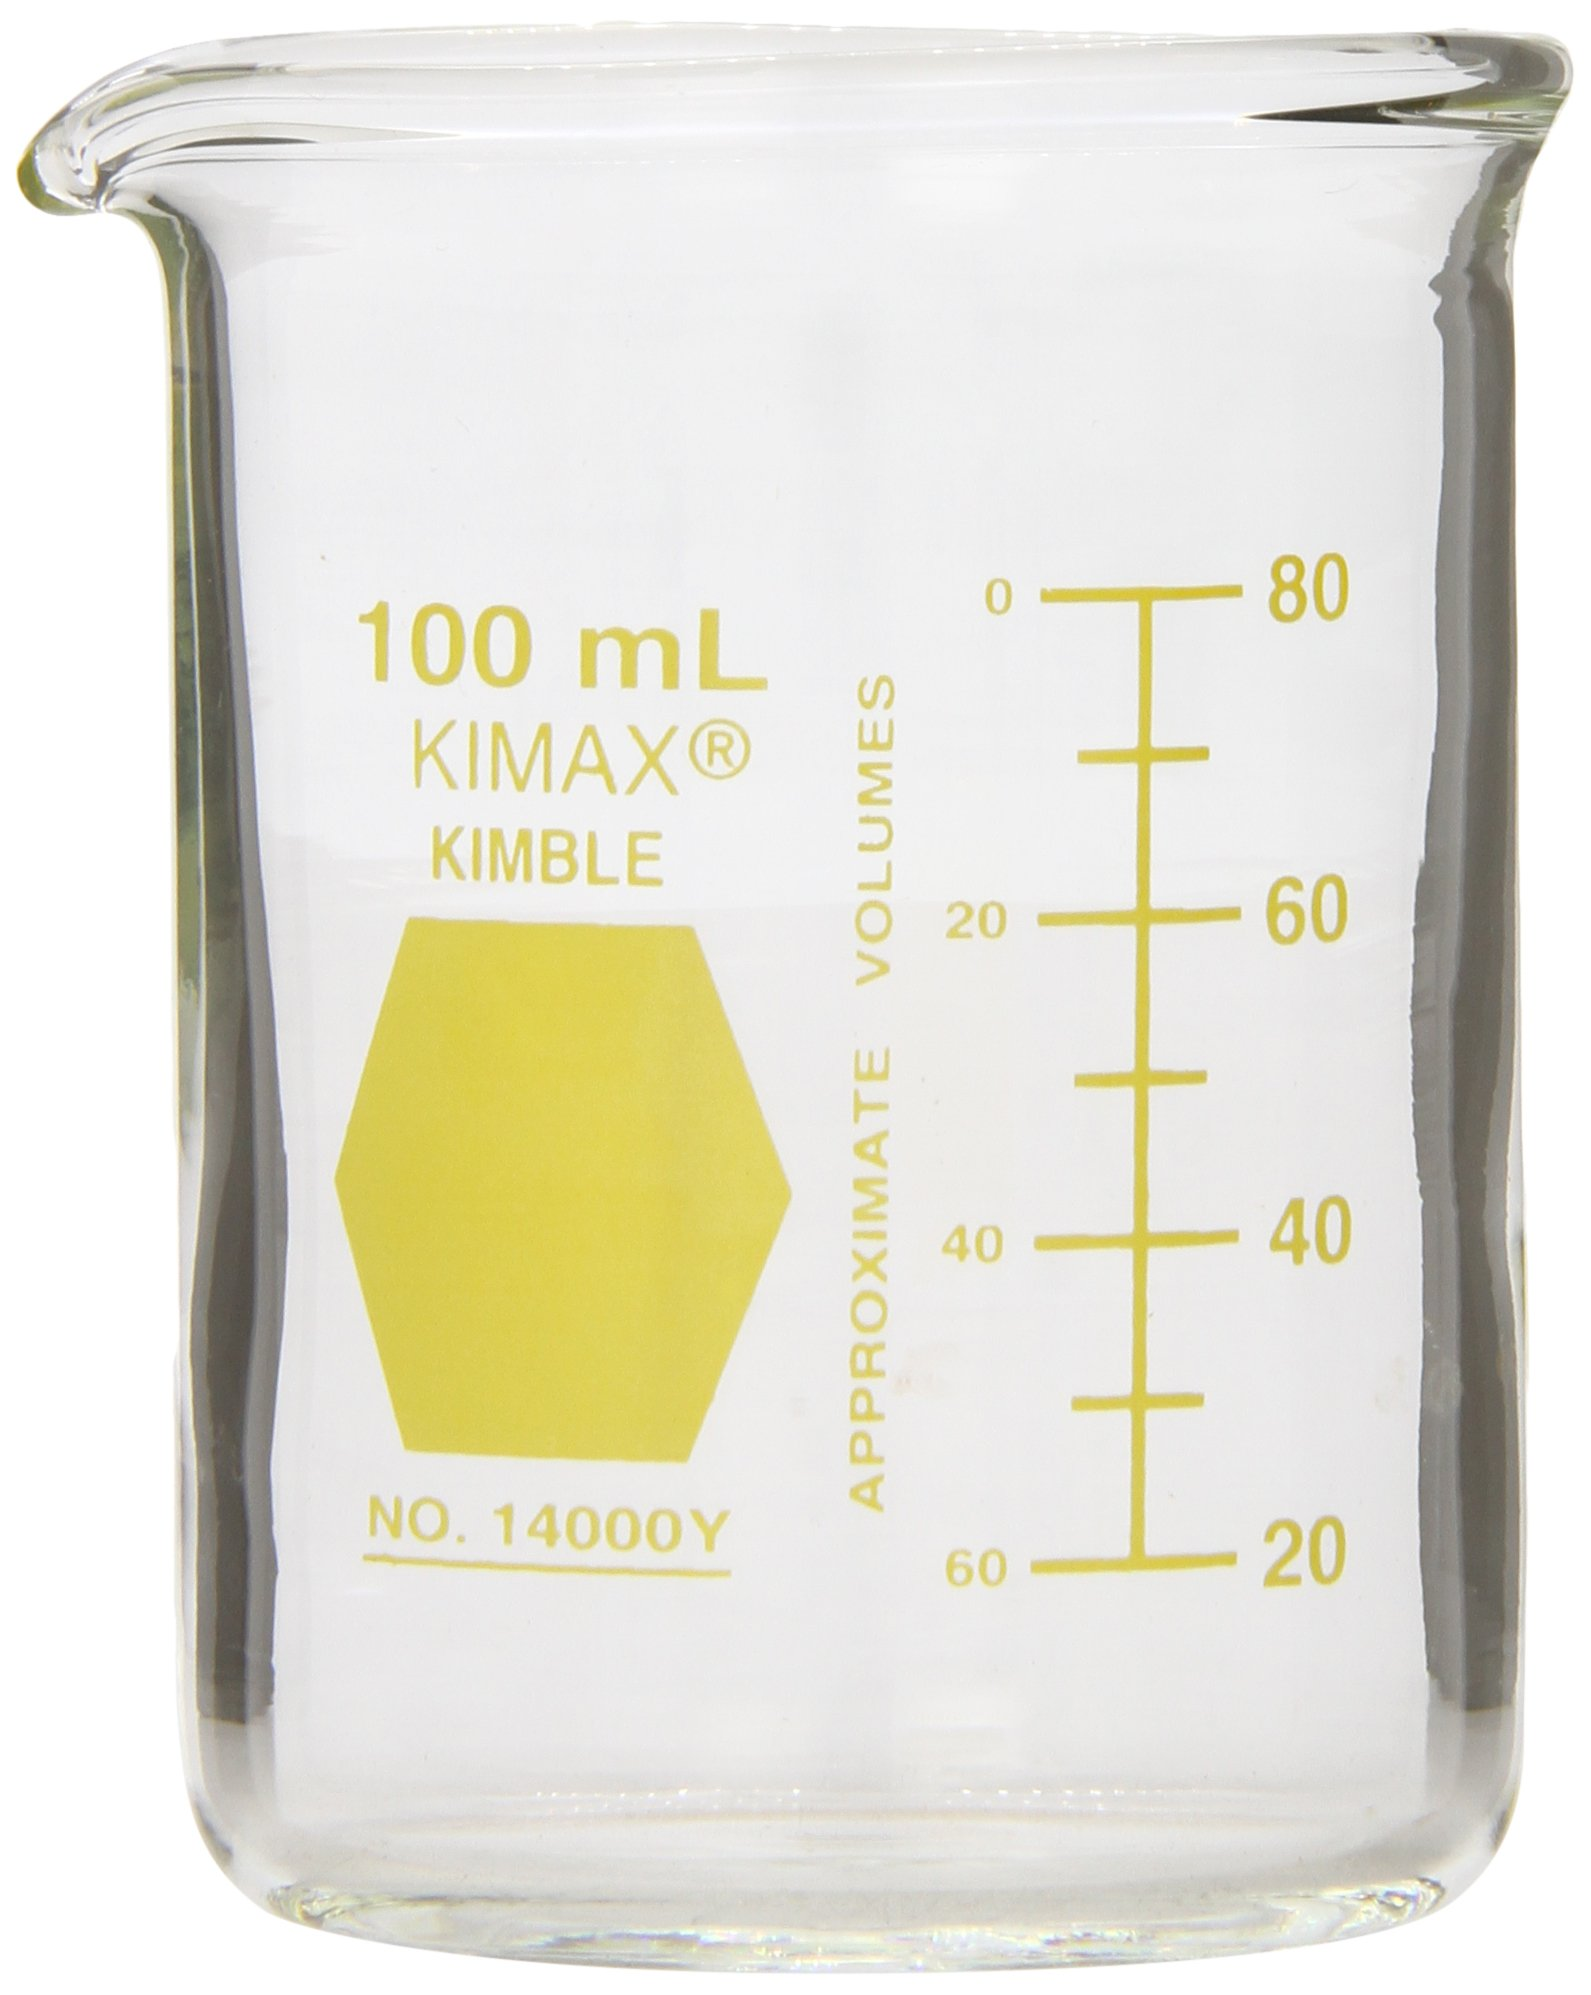 Kimble 14000Y-1000 Glass Low Form Griffin Beaker with Double Capacity Scale, 100-1000mL Graduation Interval, 1000mL Capacity, 50mL Graduation, Yellow (Case of 6)